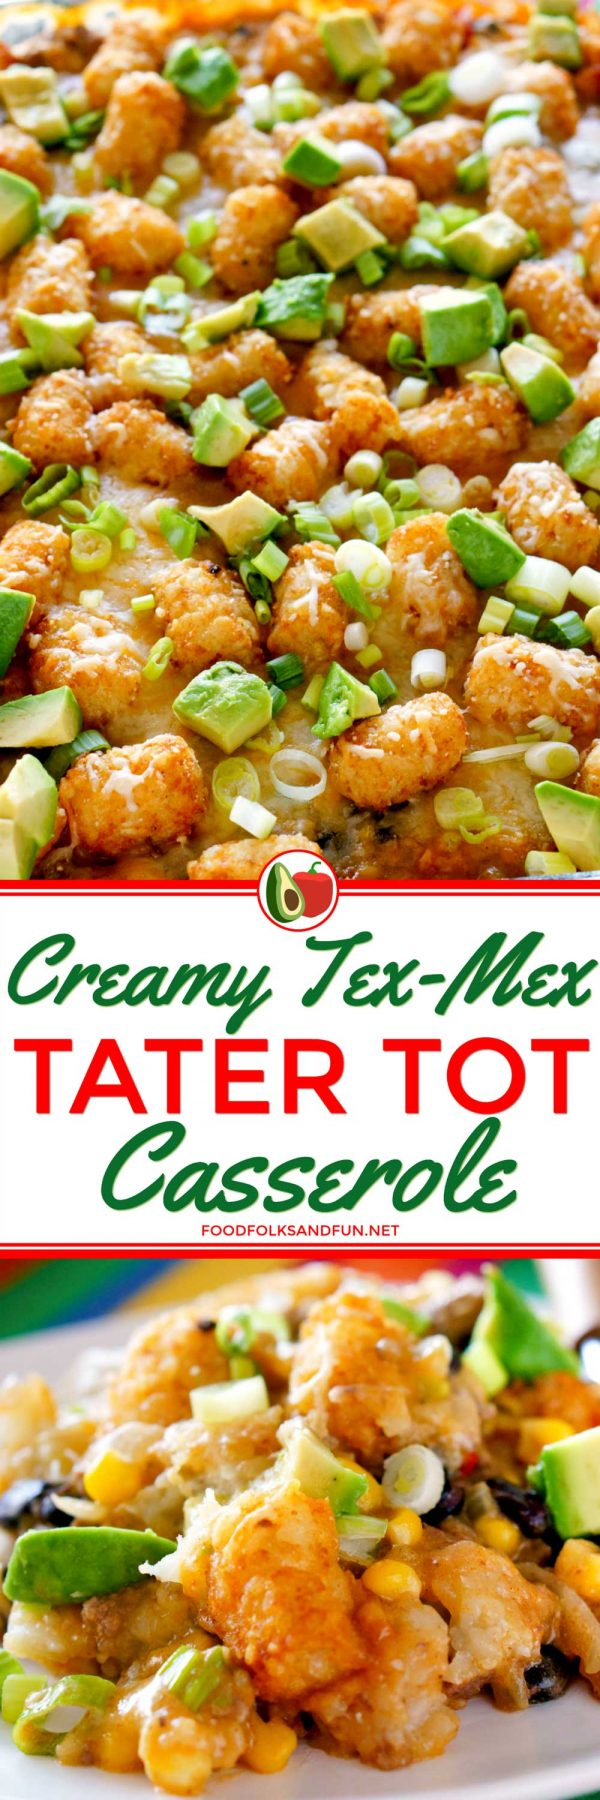 Cheesy Tater Tot Casserole made with Tex-Mex flavors.